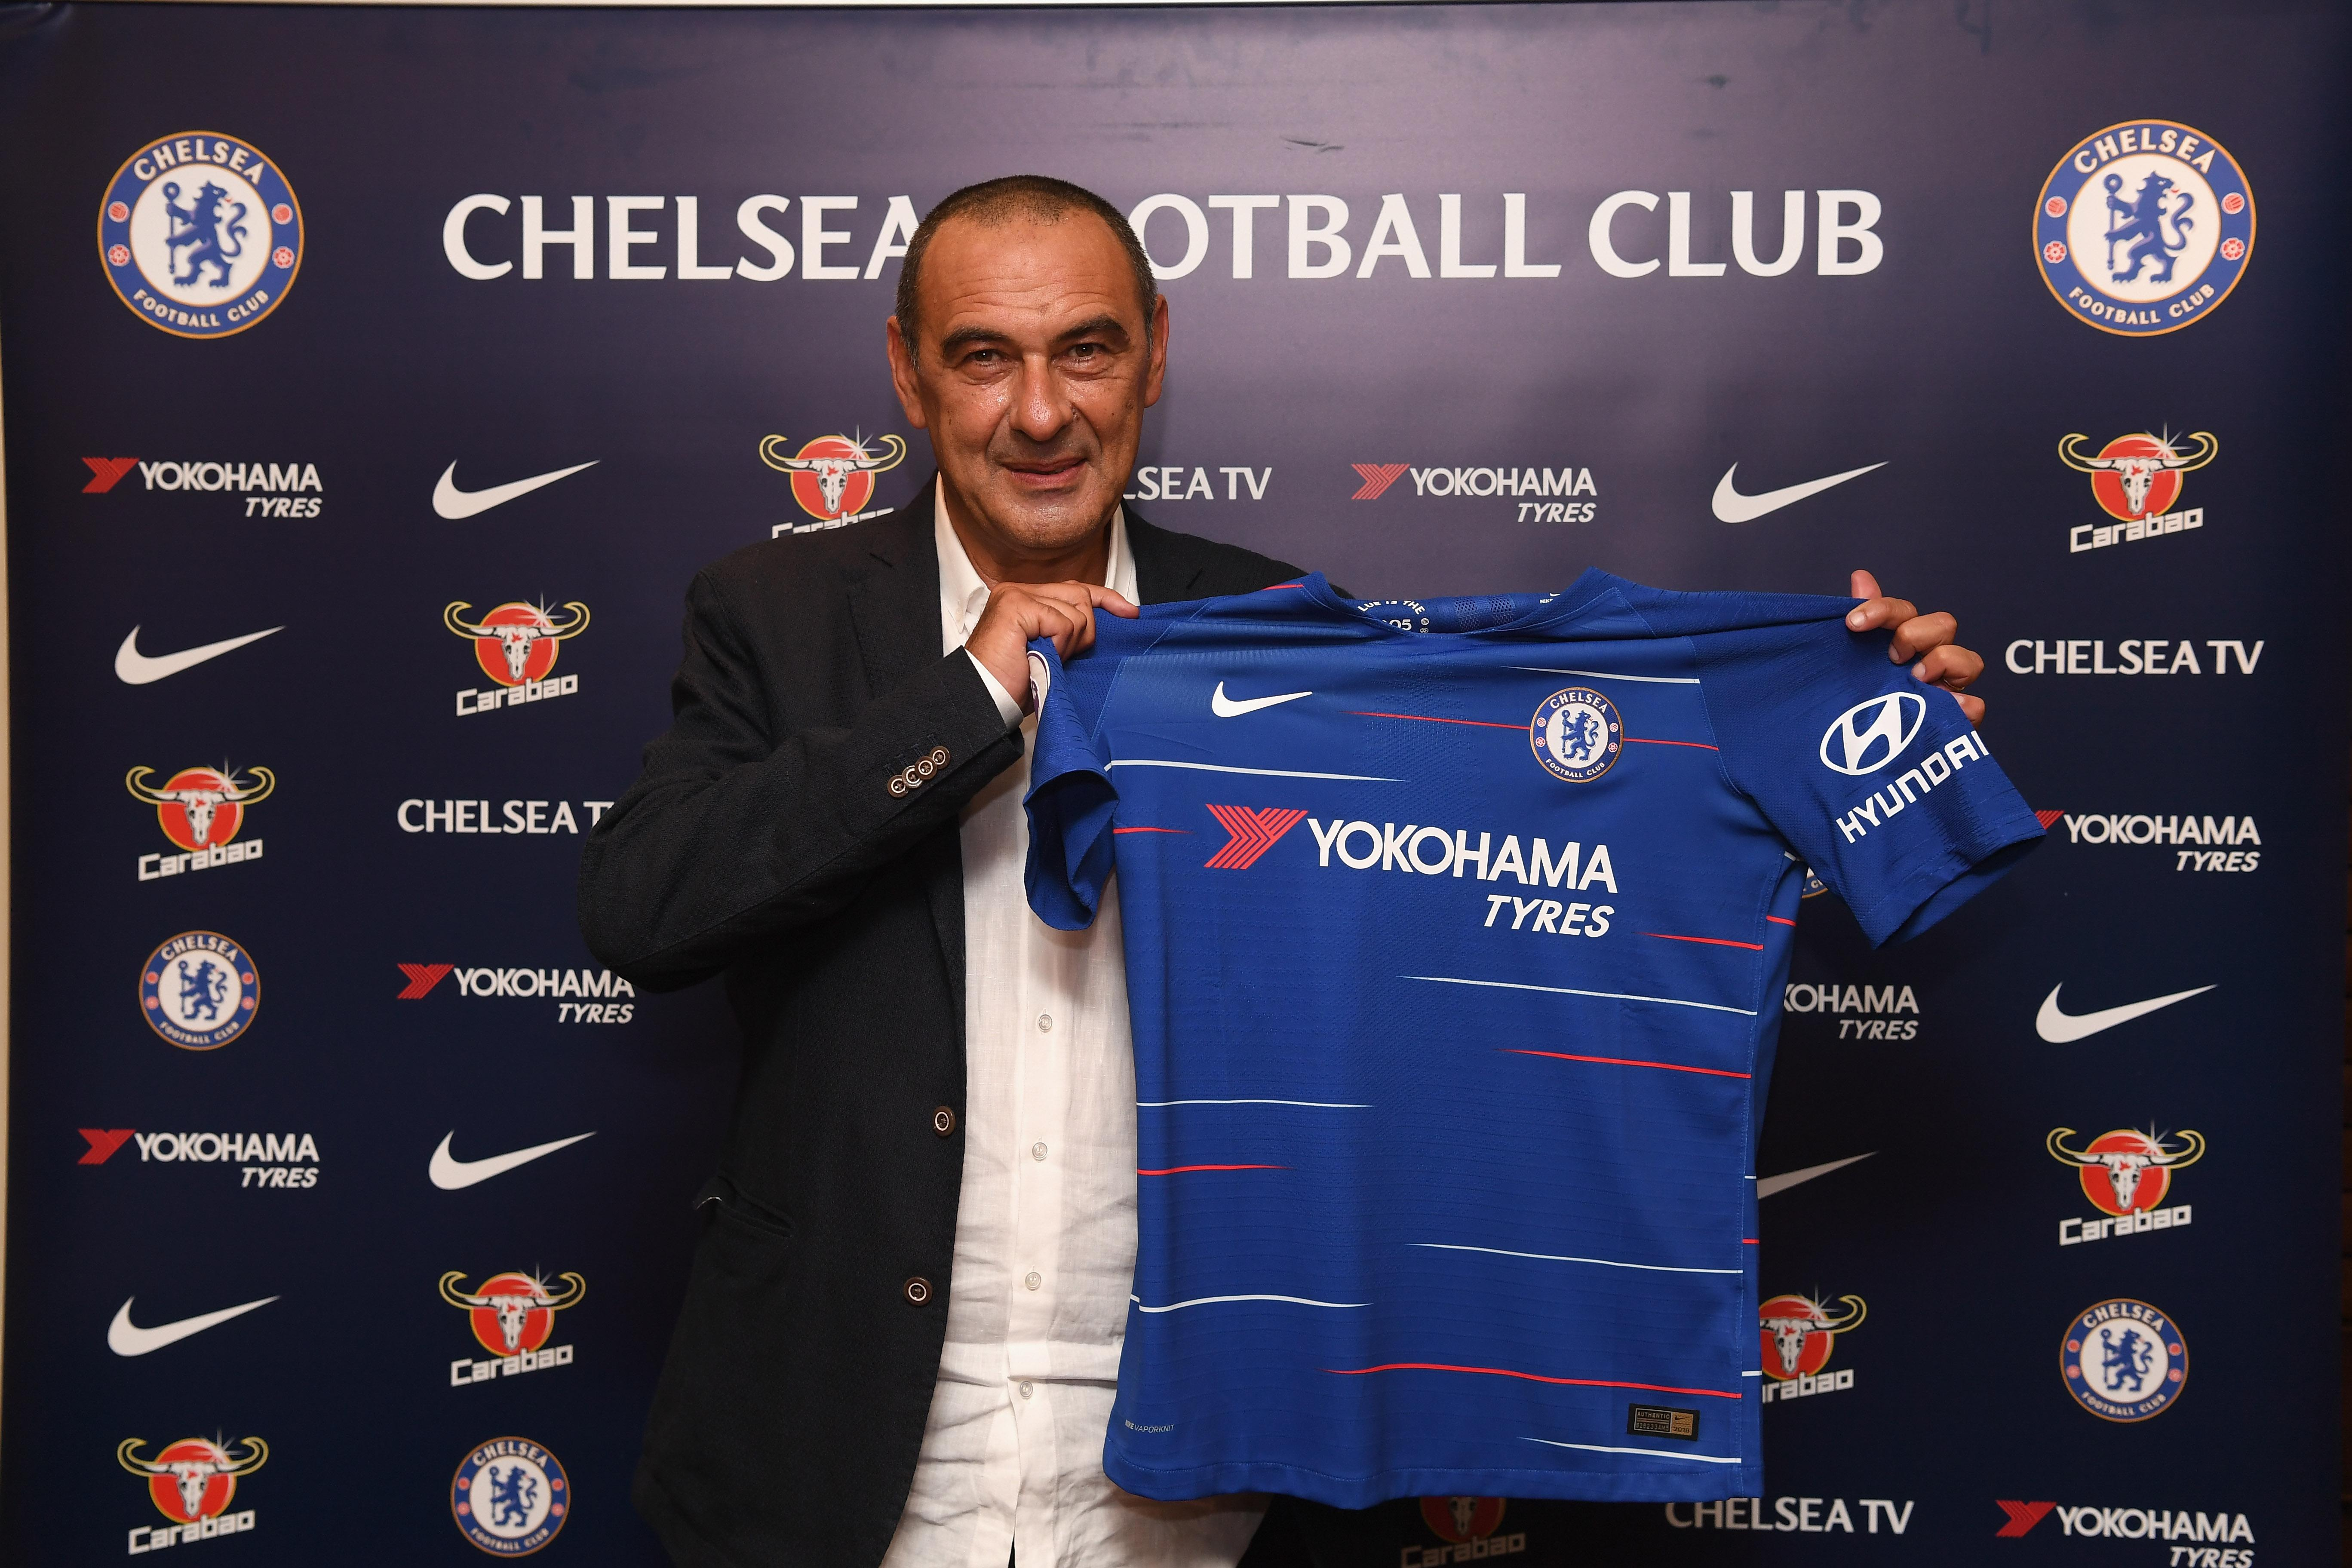 Chelsea will be hoping Sarri can lead them to glory next season